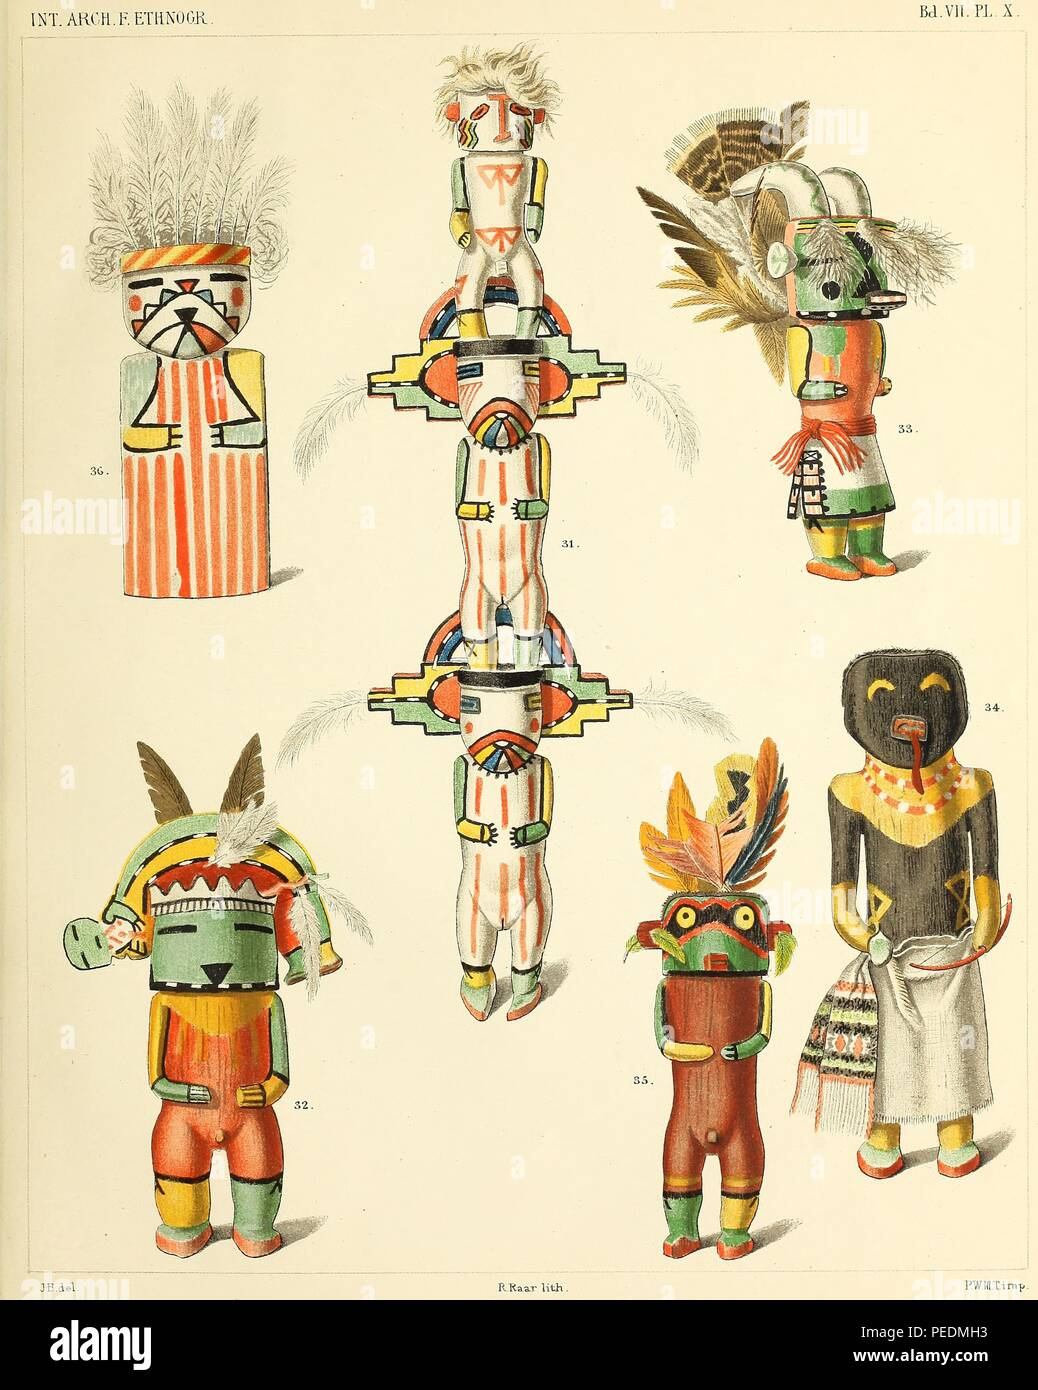 Color print, illustrating five small, colorful Kachina (likenesses of immortal spirits, messengers or personifications of nature) dolls or figures, made by Pueblo culture peoples as instructional gifts for children, 1894. Courtesy Internet Archive. () - Stock Image